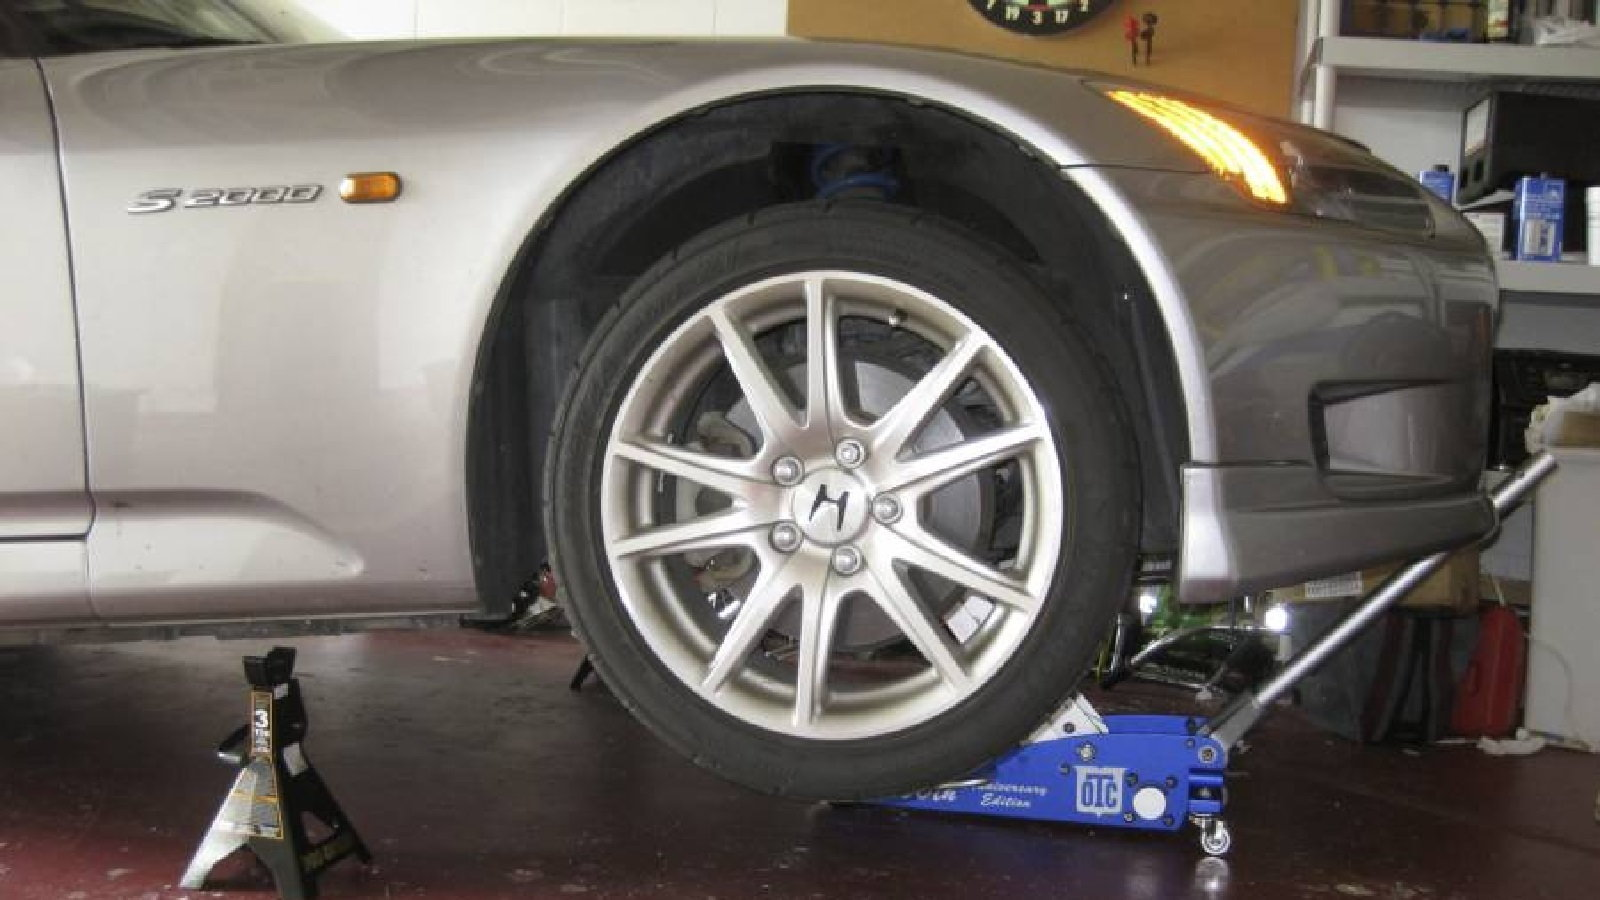 Spring spacers, suspension, maintenance